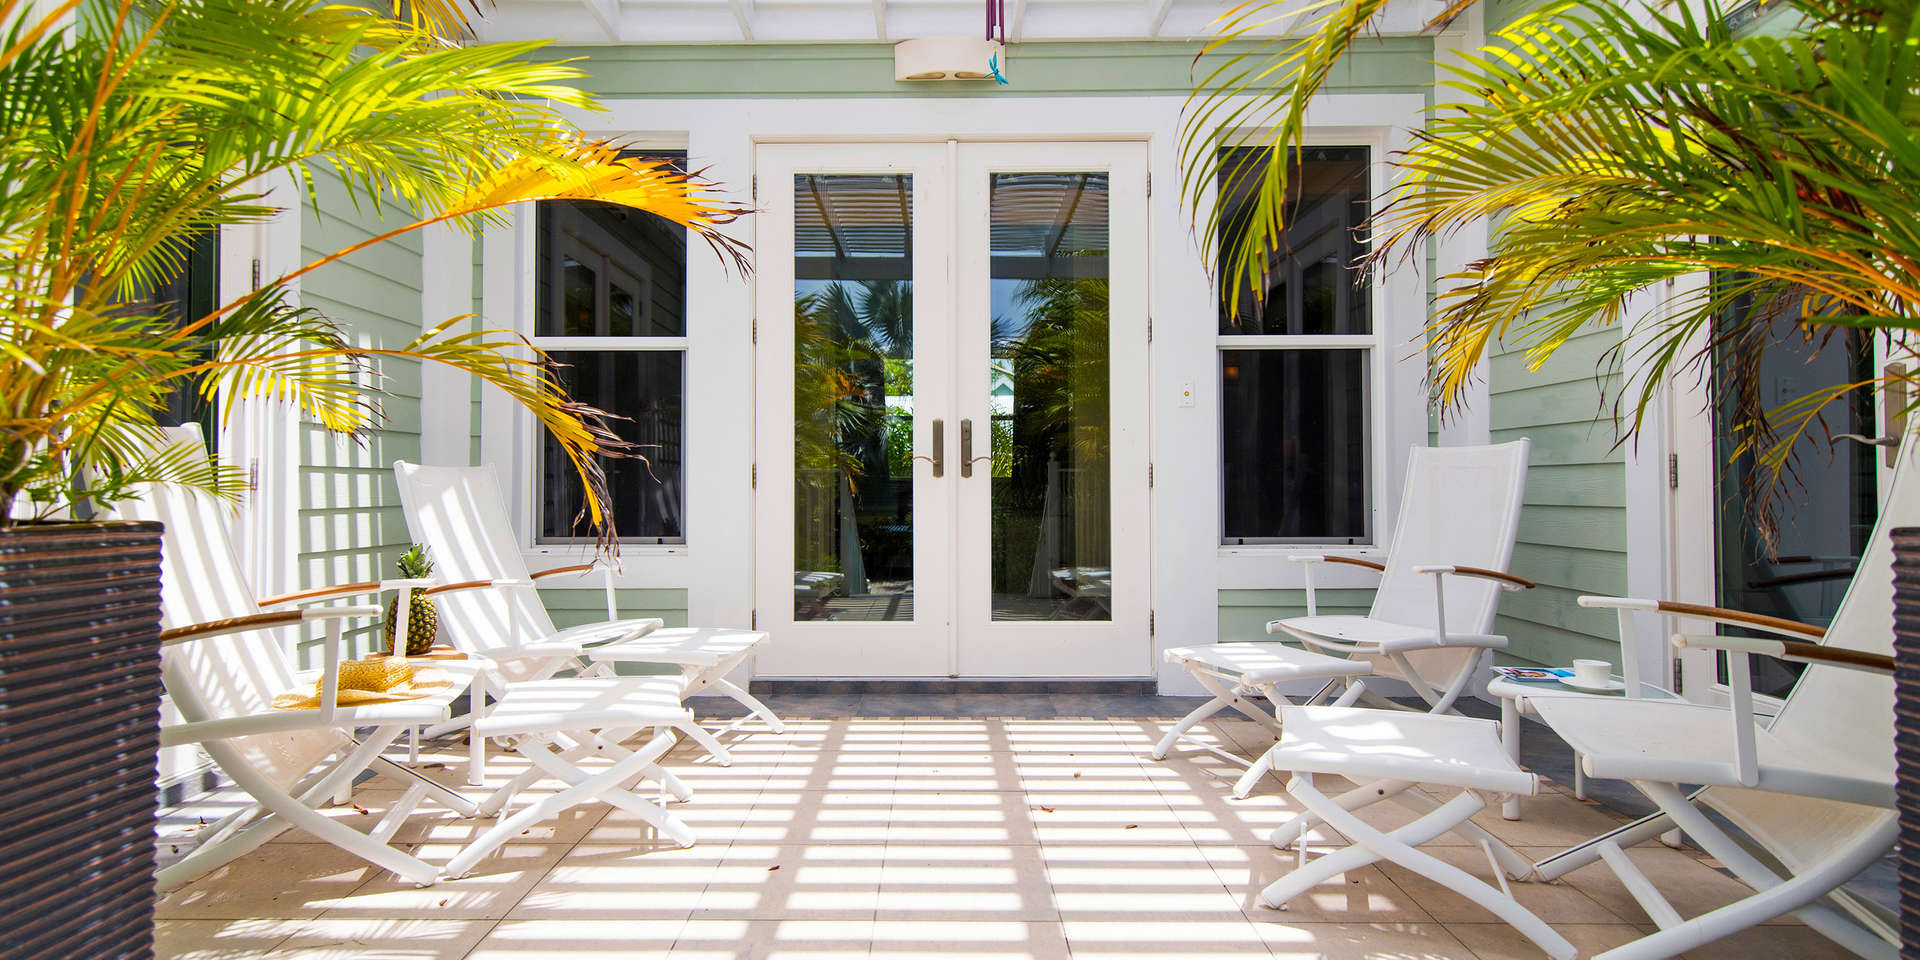 Luxury villa rentals caribbean - Cayman islands - Grand cayman - West bay - Pomegranate Cottage - Image 1/13